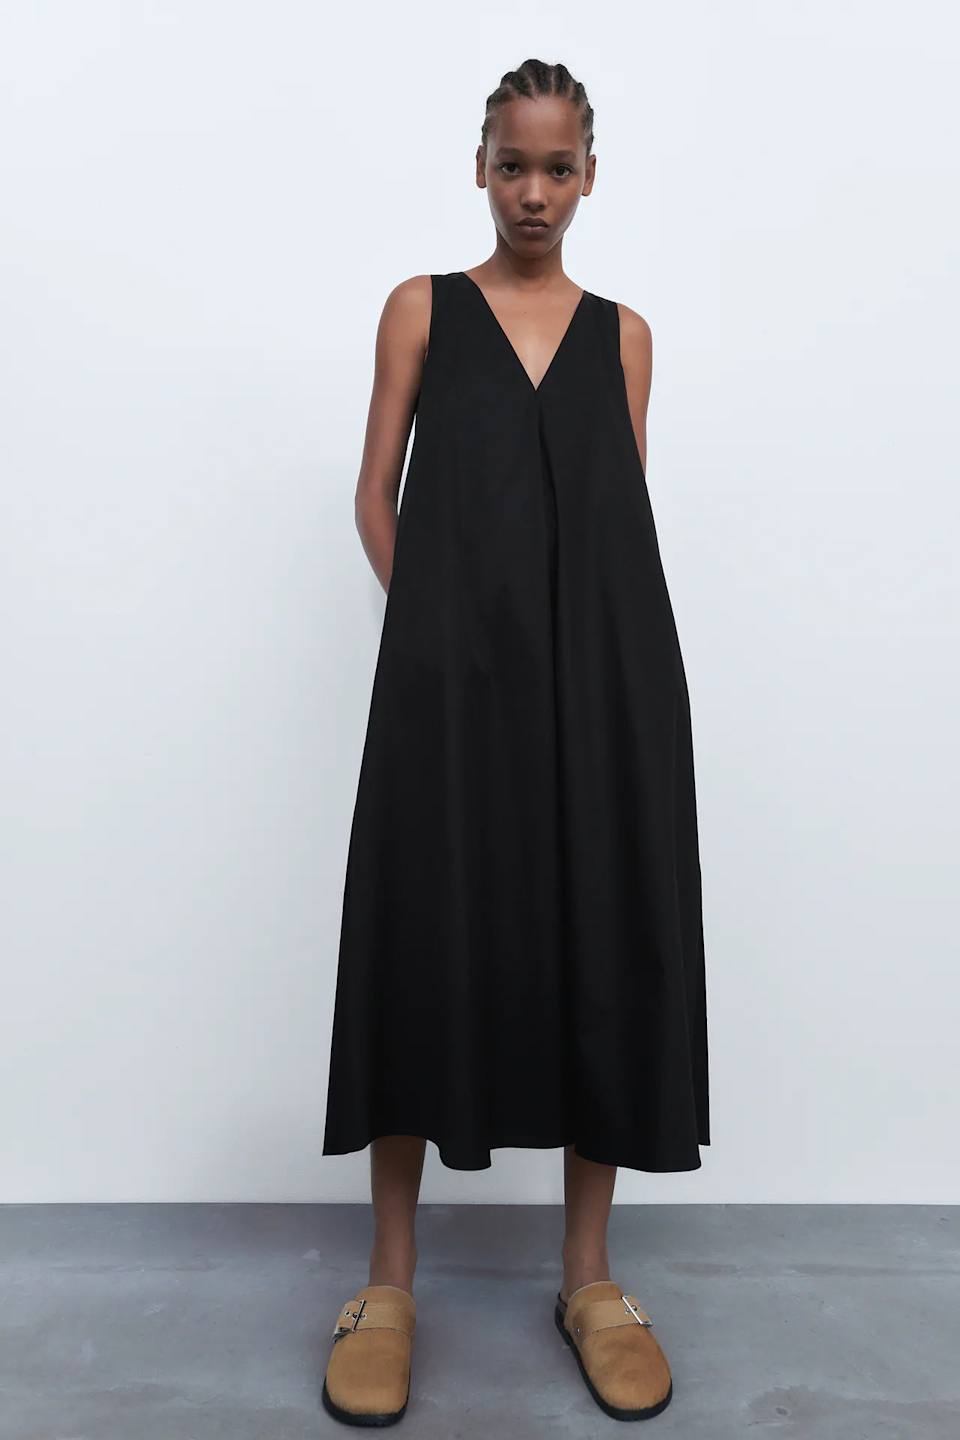 """Don't be alarmed if you catch us wearing this dress with Birkenstock Boston clogs every single day from now until October. <br> <br> <strong>Zara</strong> Voluminous Dress, $, available at <a href=""""https://go.skimresources.com/?id=30283X879131&url=https%3A%2F%2Fwww.zara.com%2Fus%2Fen%2Fvoluminous-dress-trf-p04514302.html%3Fv1%3D63090603%26v2%3D1549249"""" rel=""""nofollow noopener"""" target=""""_blank"""" data-ylk=""""slk:Zara"""" class=""""link rapid-noclick-resp"""">Zara</a>"""